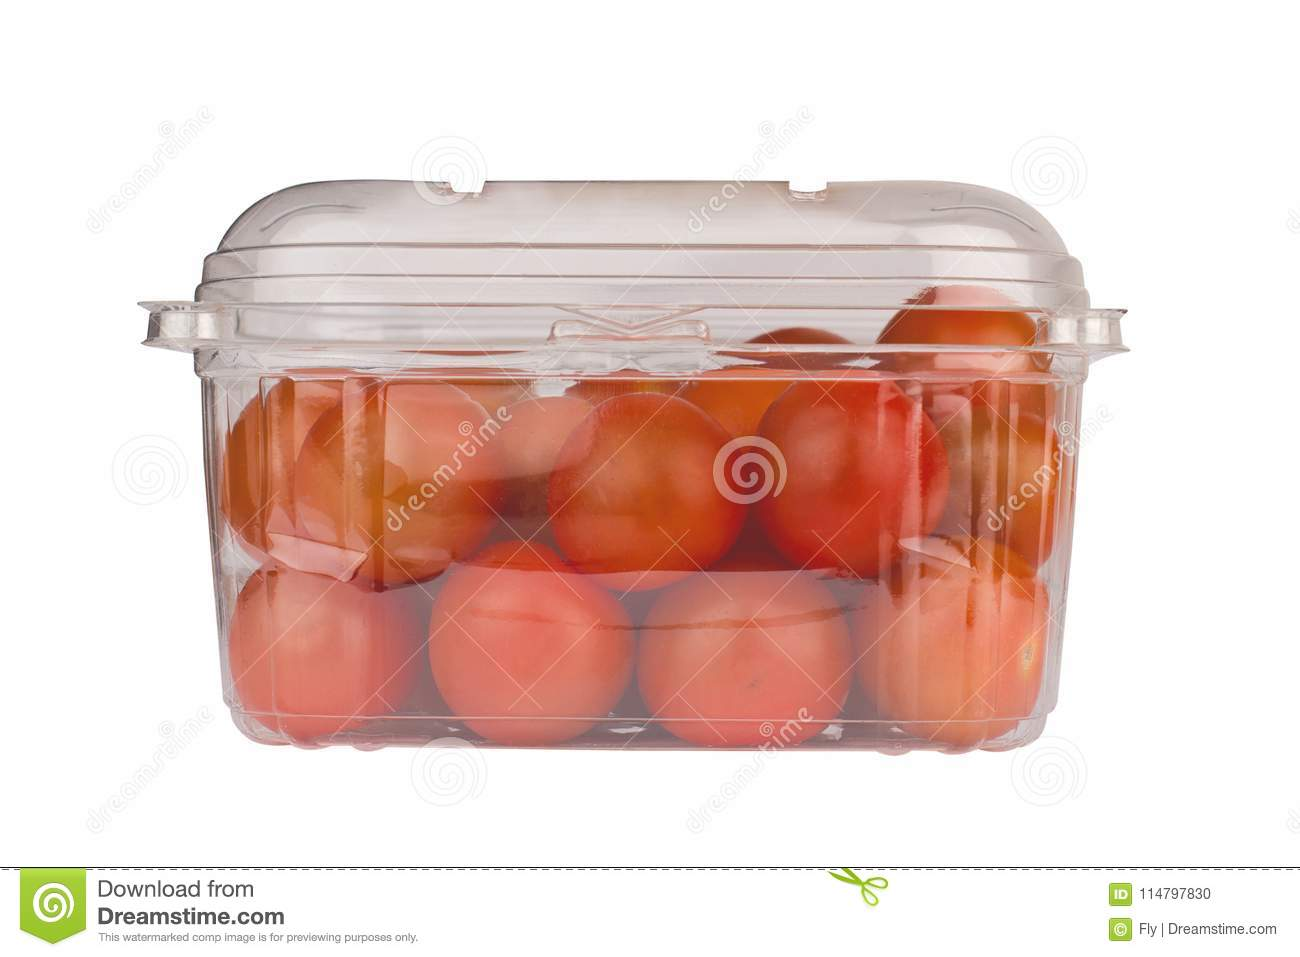 Cherry Tomatoes In Plastic Packaging Stock Photo Image of empty